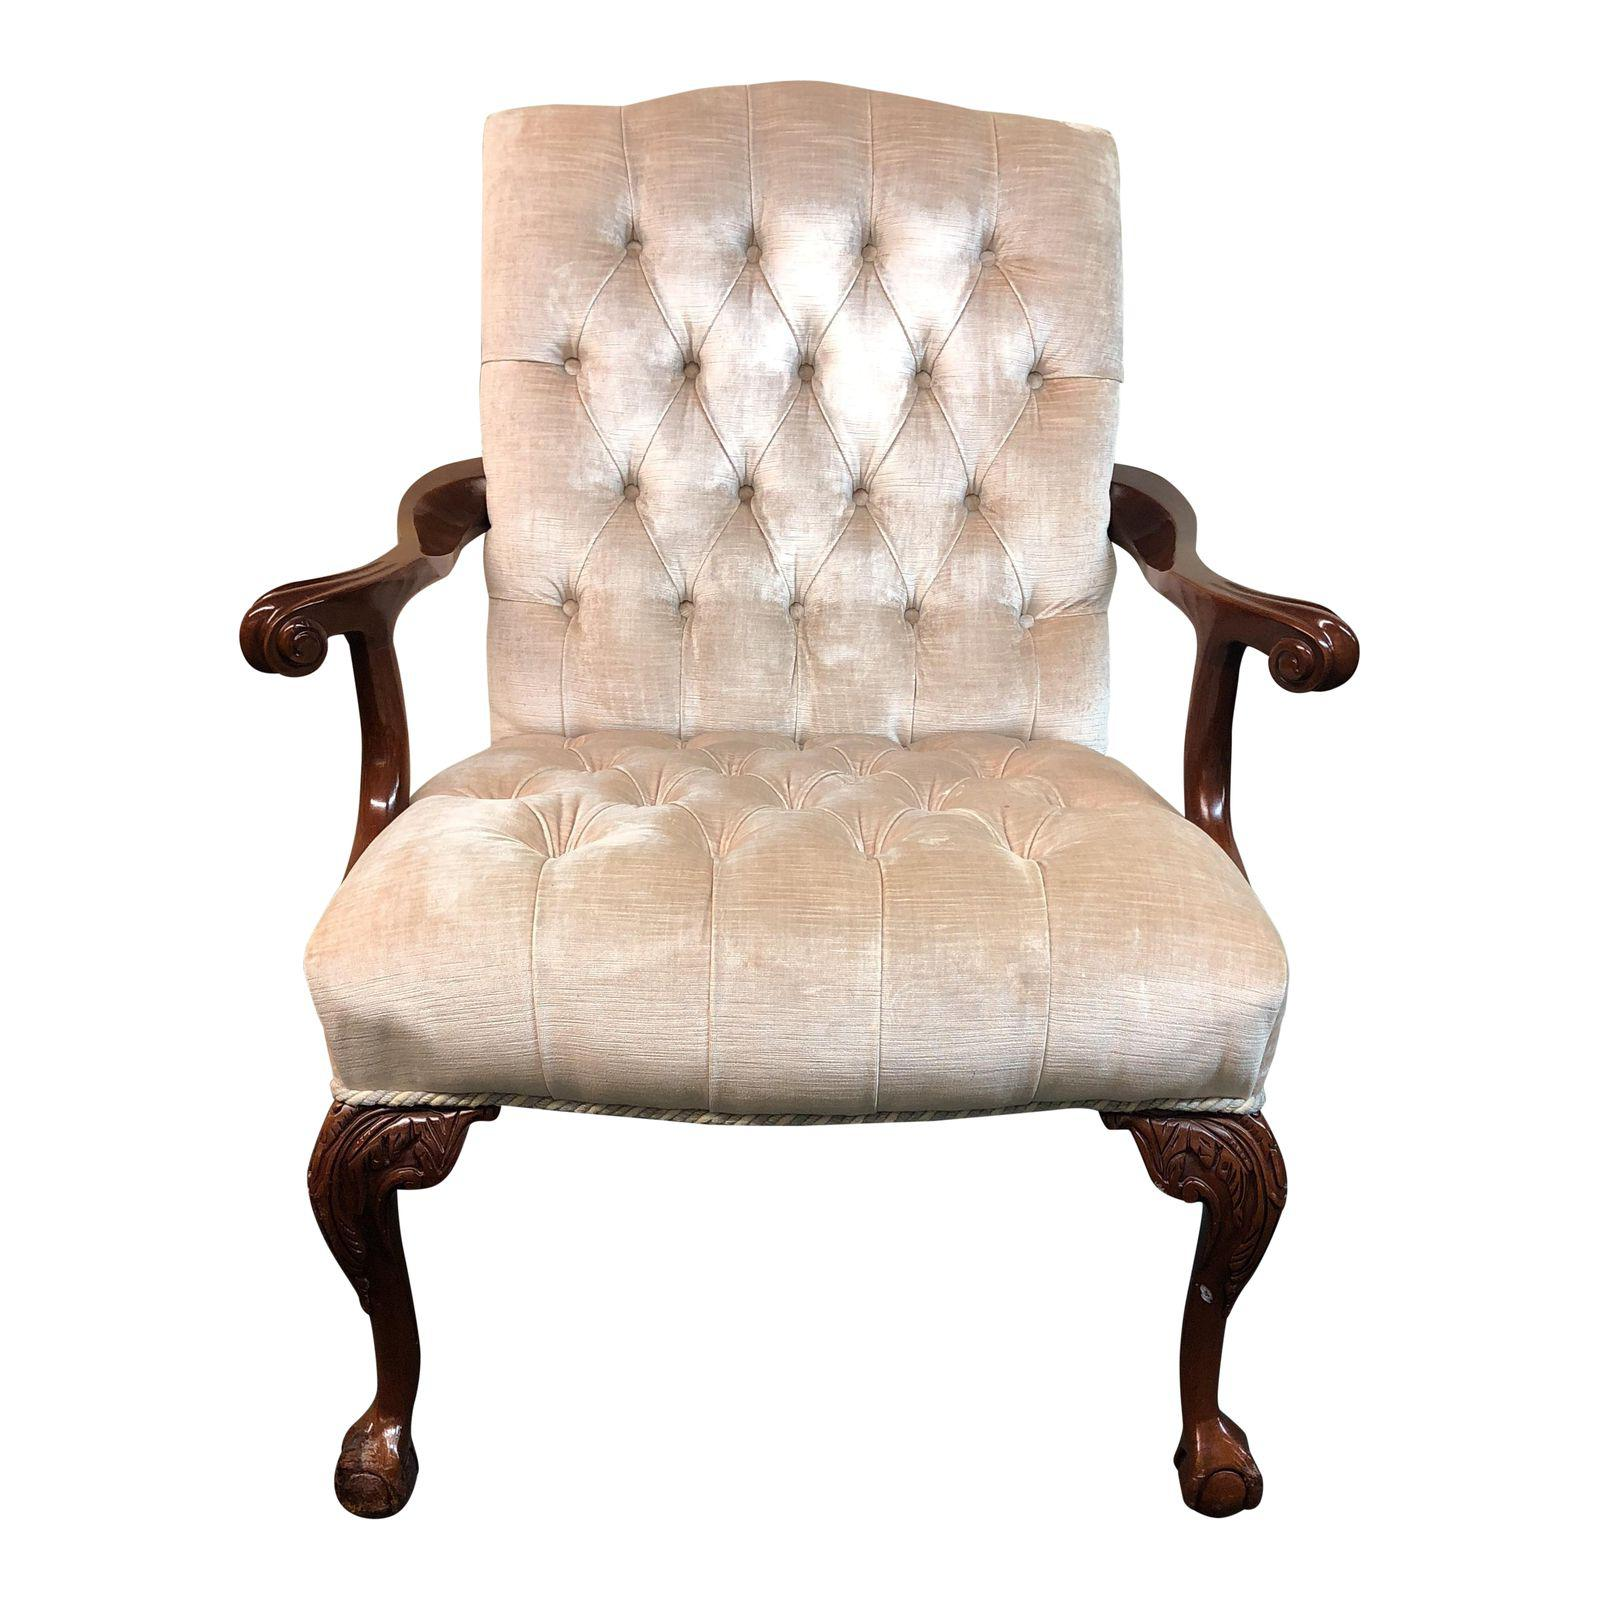 Hancock moore chippendale style upholstered armchair design design parisarafo Images